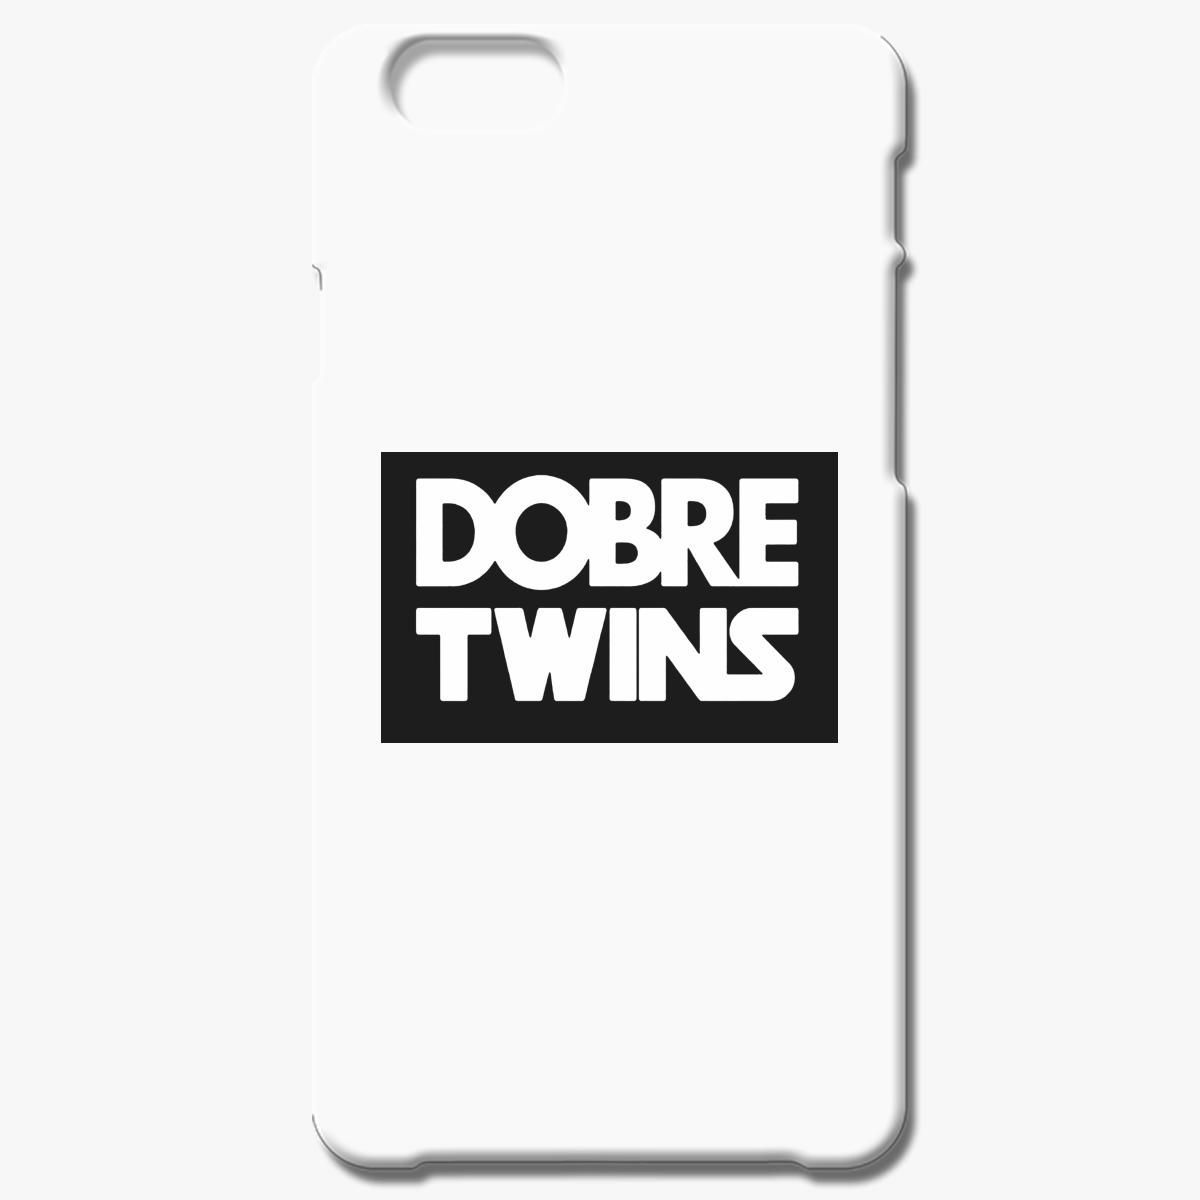 Dobre Twins Brothers Iphone 7 Plus Case